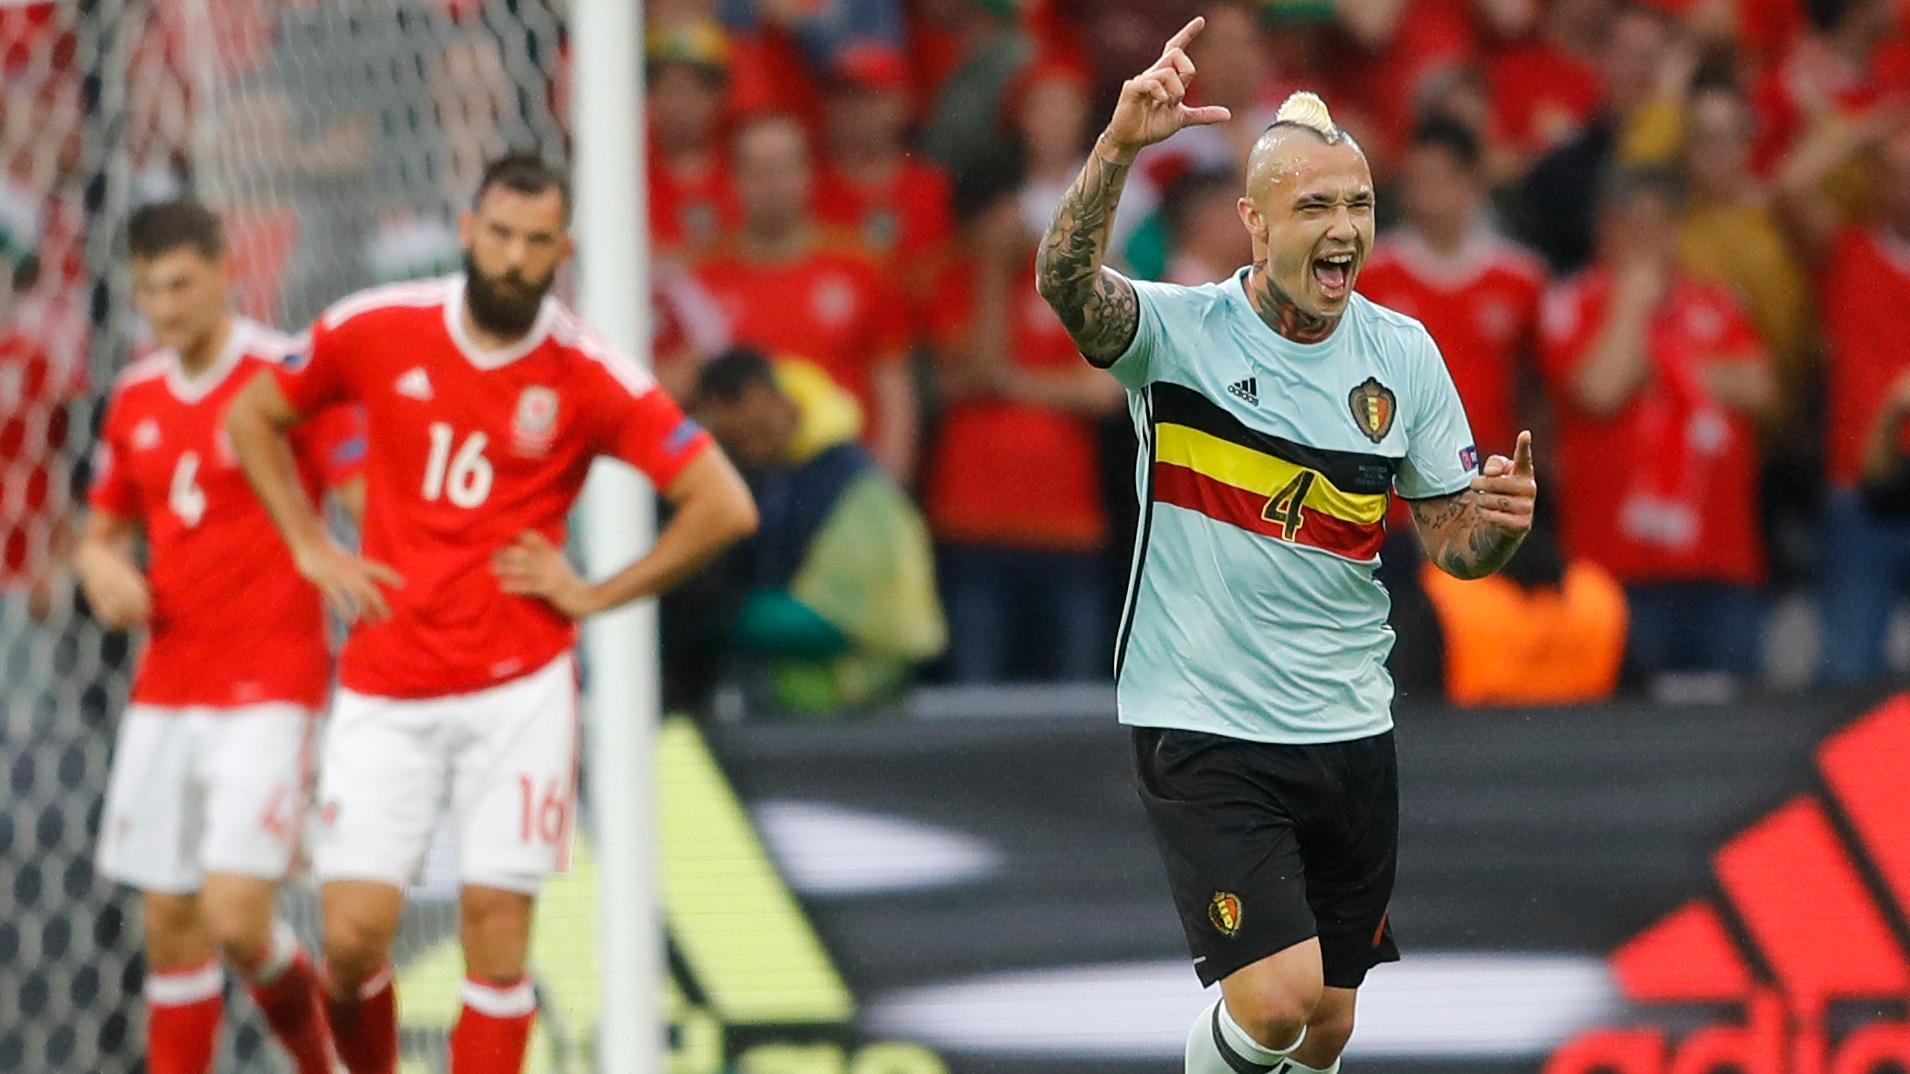 Nainggolan's laser puts Belgium on the board